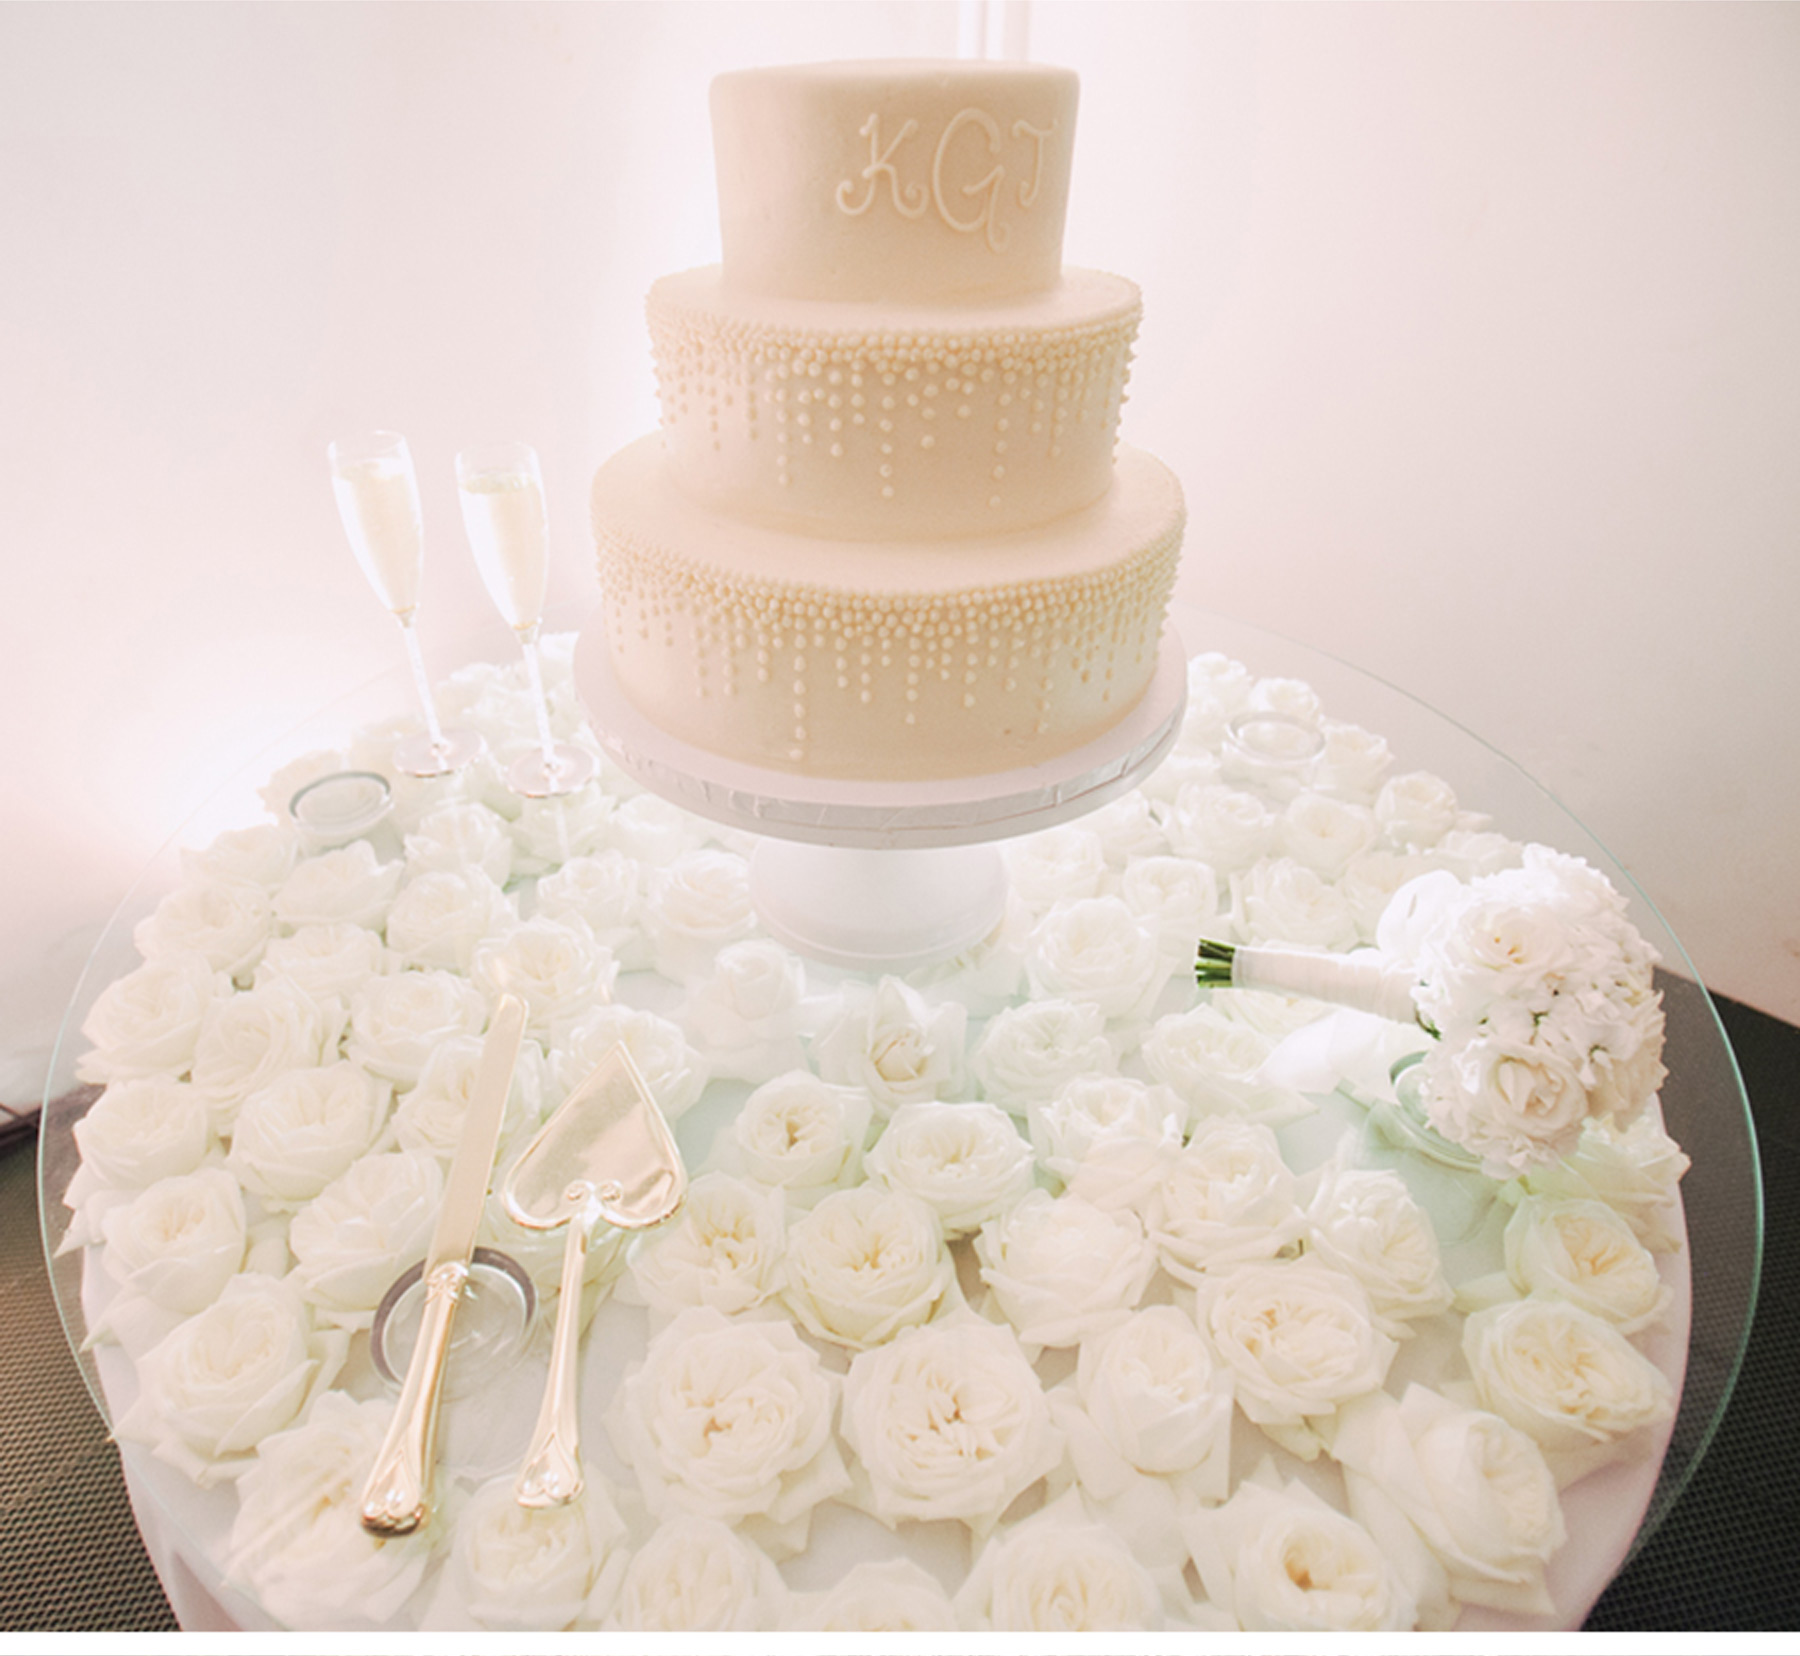 White on White Tiered Wedding Cake with Initials